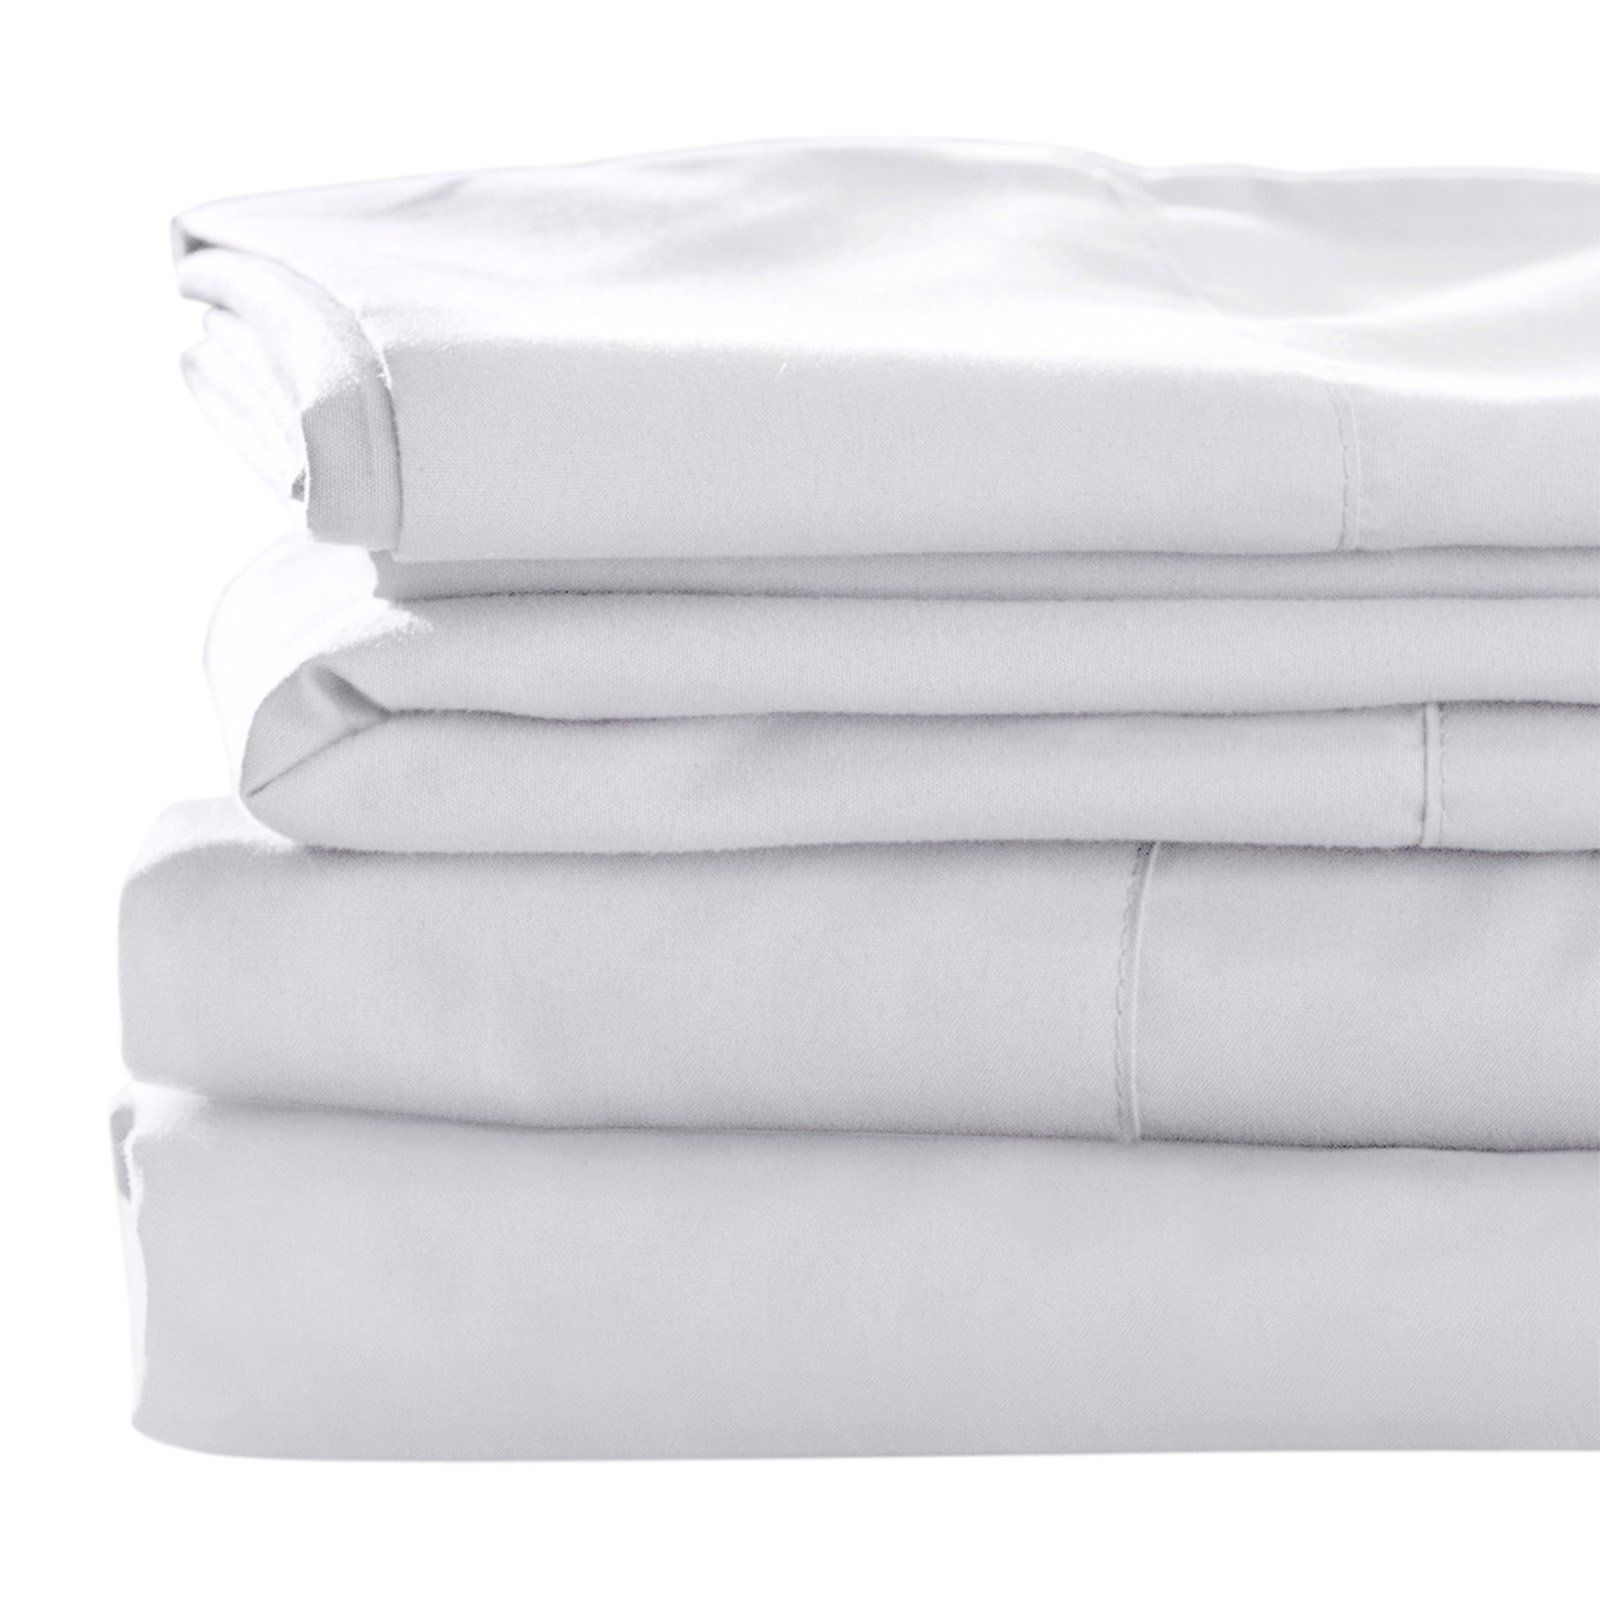 Blended Bamboo Sheet Set By Best Bamboo Bedding White Size Queen